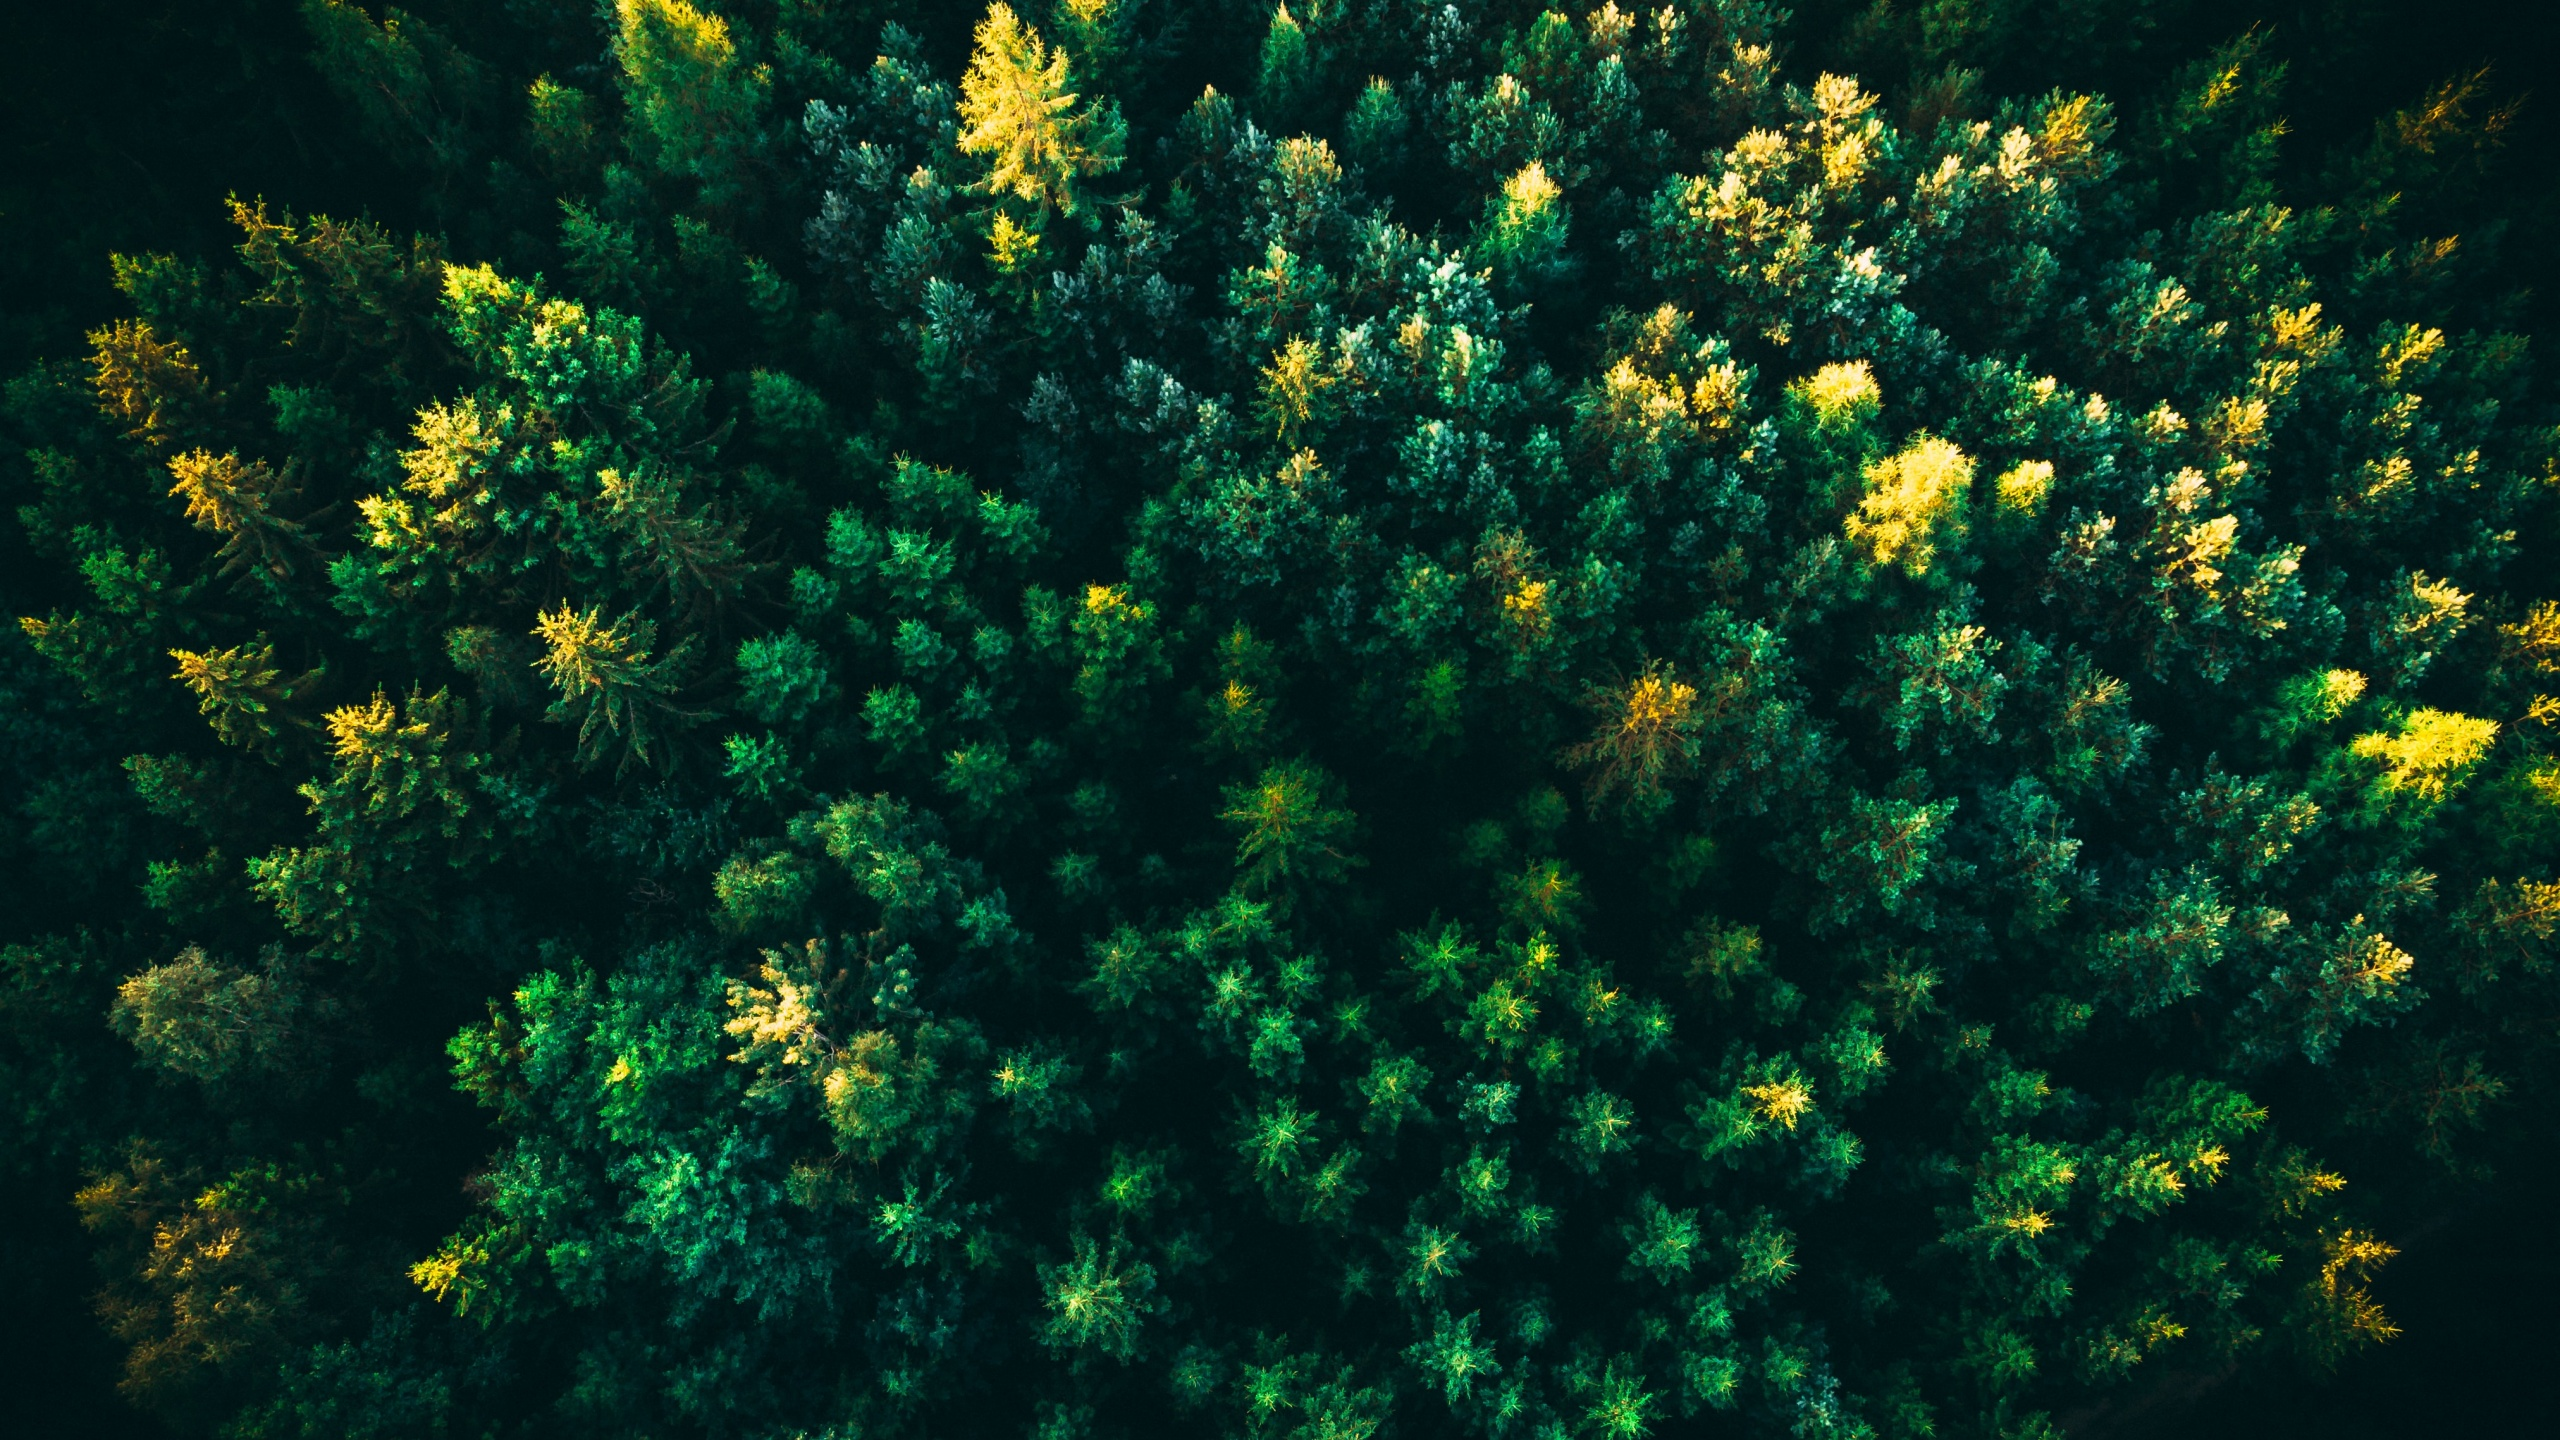 Green Trees 4k Wallpaper Forest Aerial View Greenery Drone Photo Nature 2158